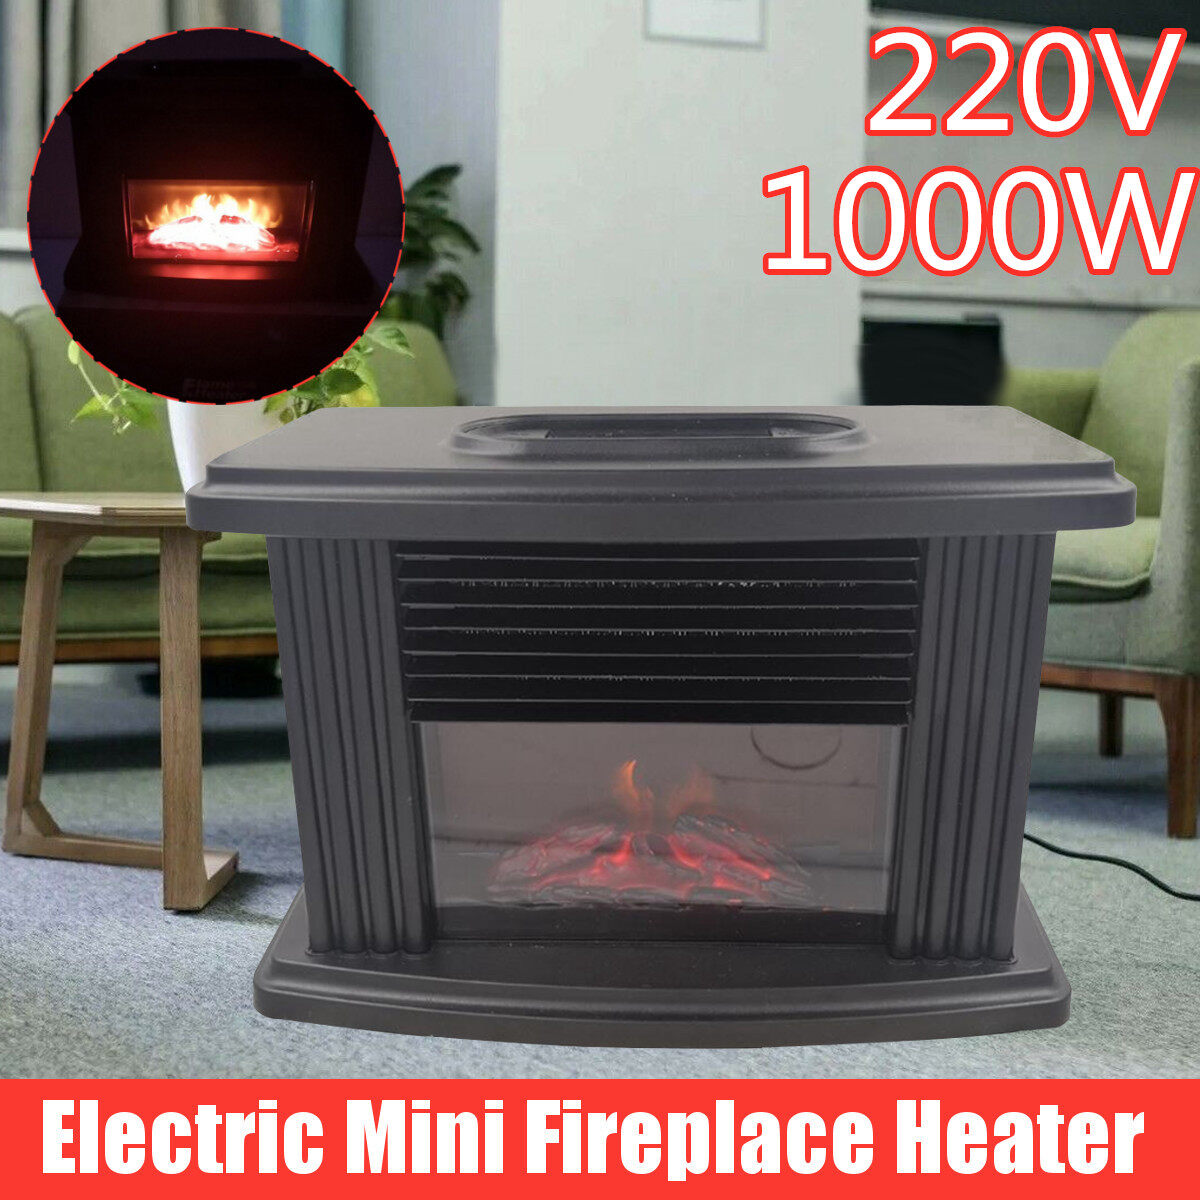 1000w Electric Mini Fireplace Heater Flame Instant Heating With Overheating Power Off Protection Living Room Lazada Ph